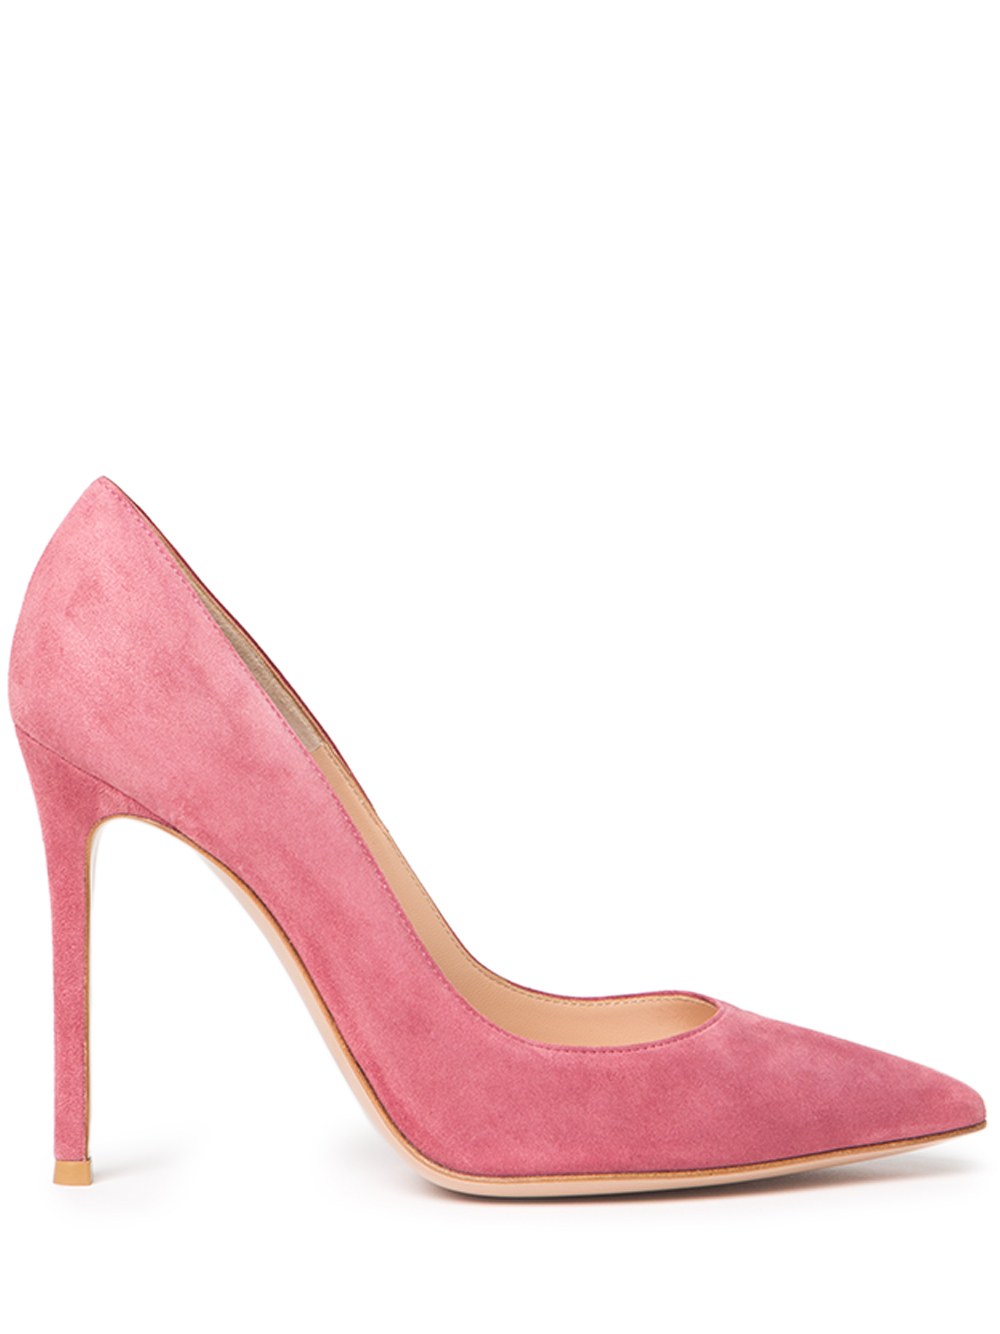 Gianvito Rossi Classic Suede Pumps In Pink Lyst